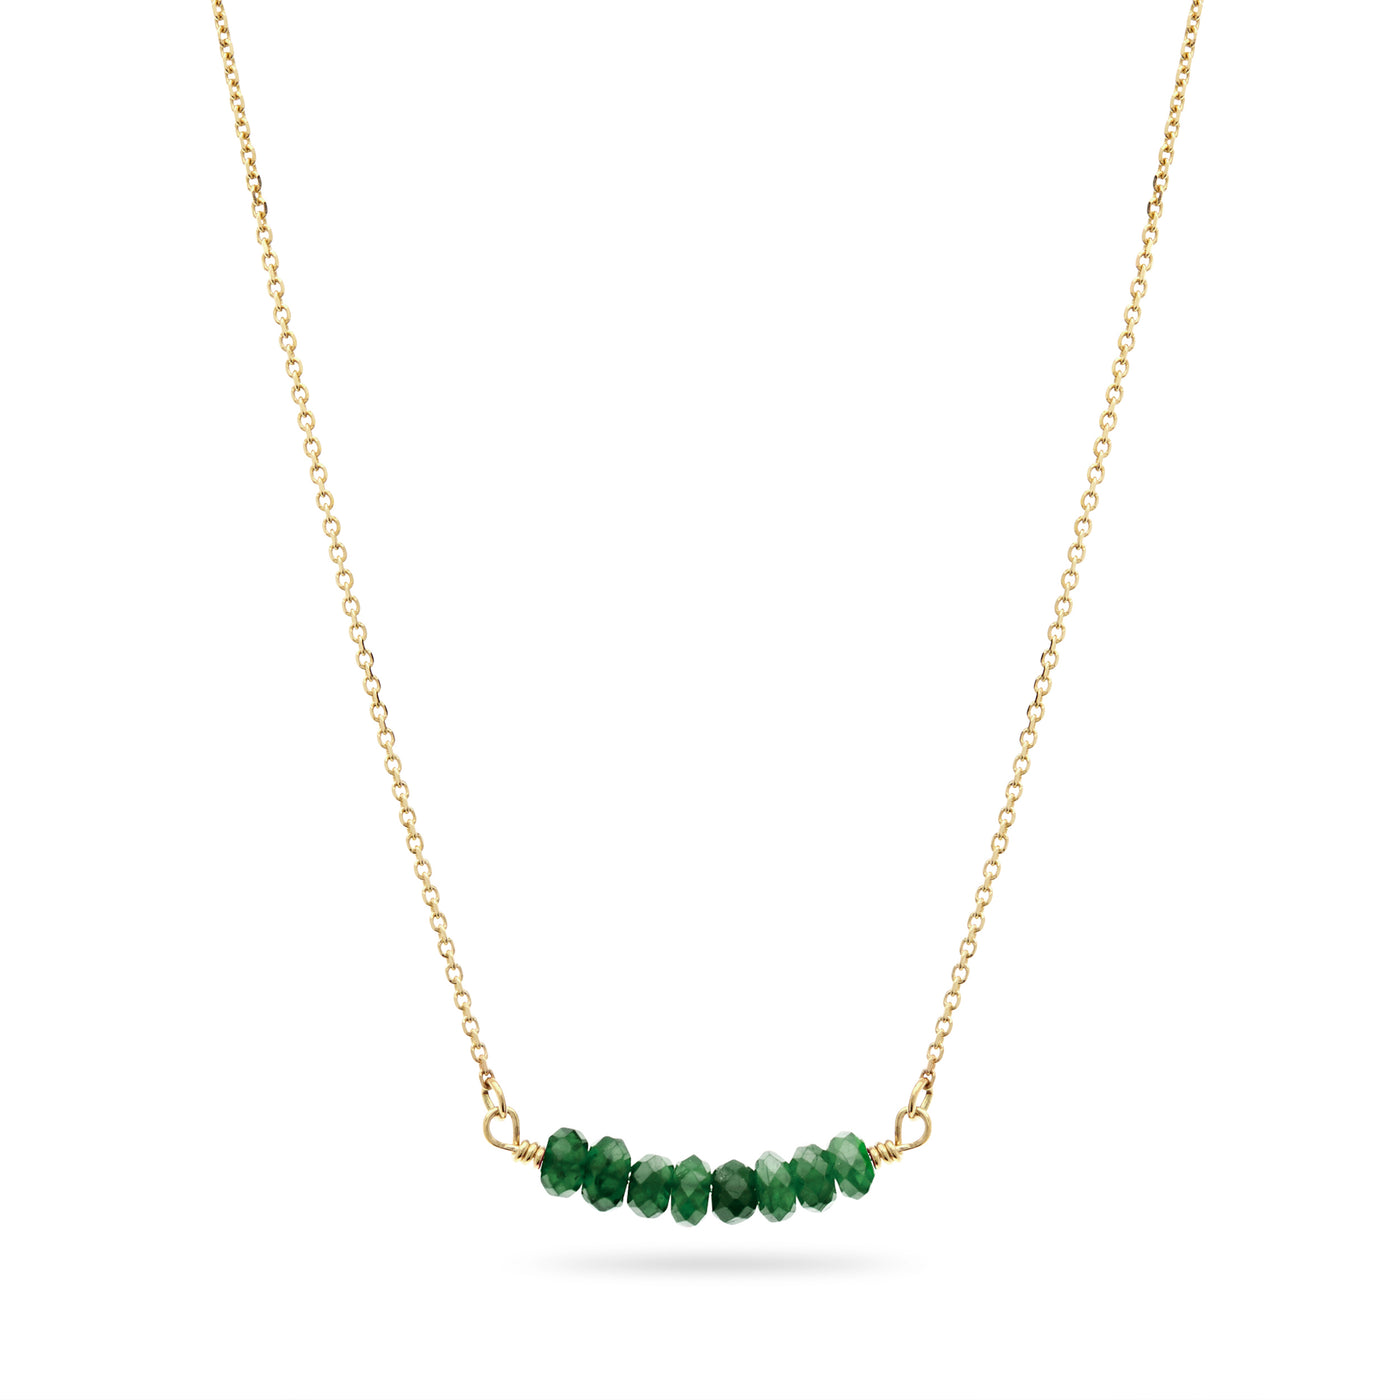 Emerald Smile Necklace in Yellow Gold